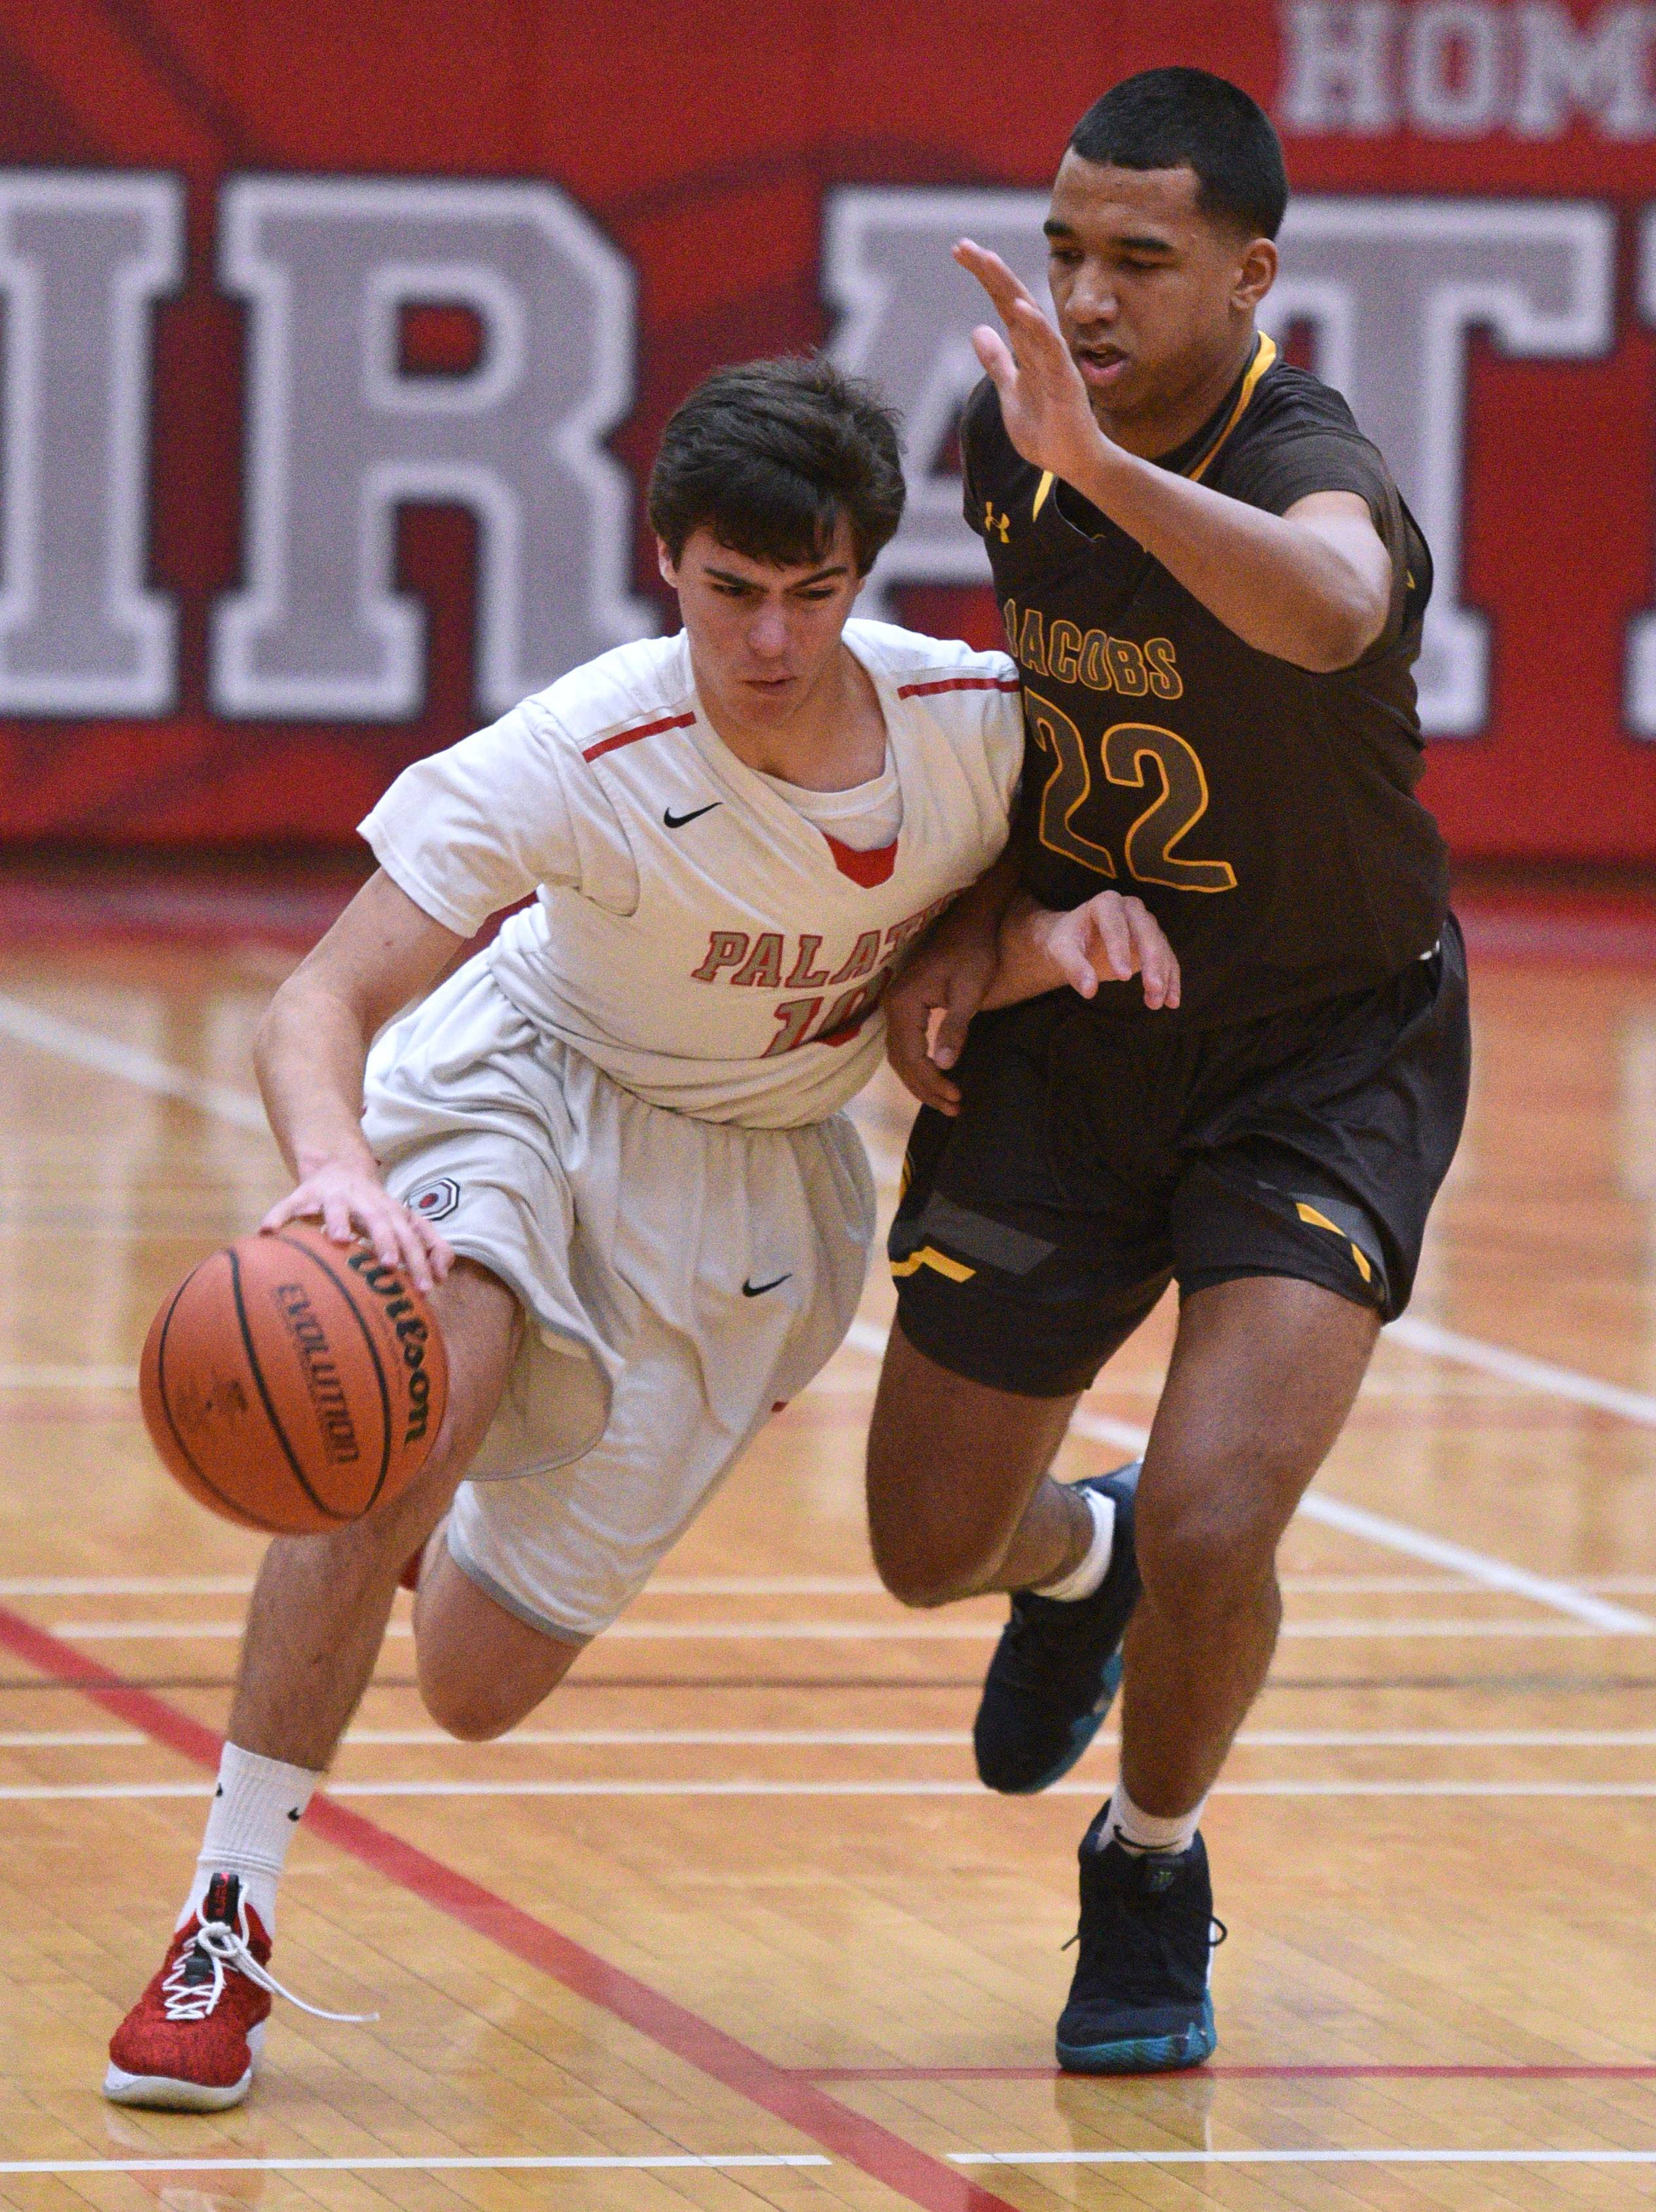 Palatine's Luke Seiffert, left, drives past Jacobs' Jaden Henderson (22) during the boys basketball game Friday in Palatine.